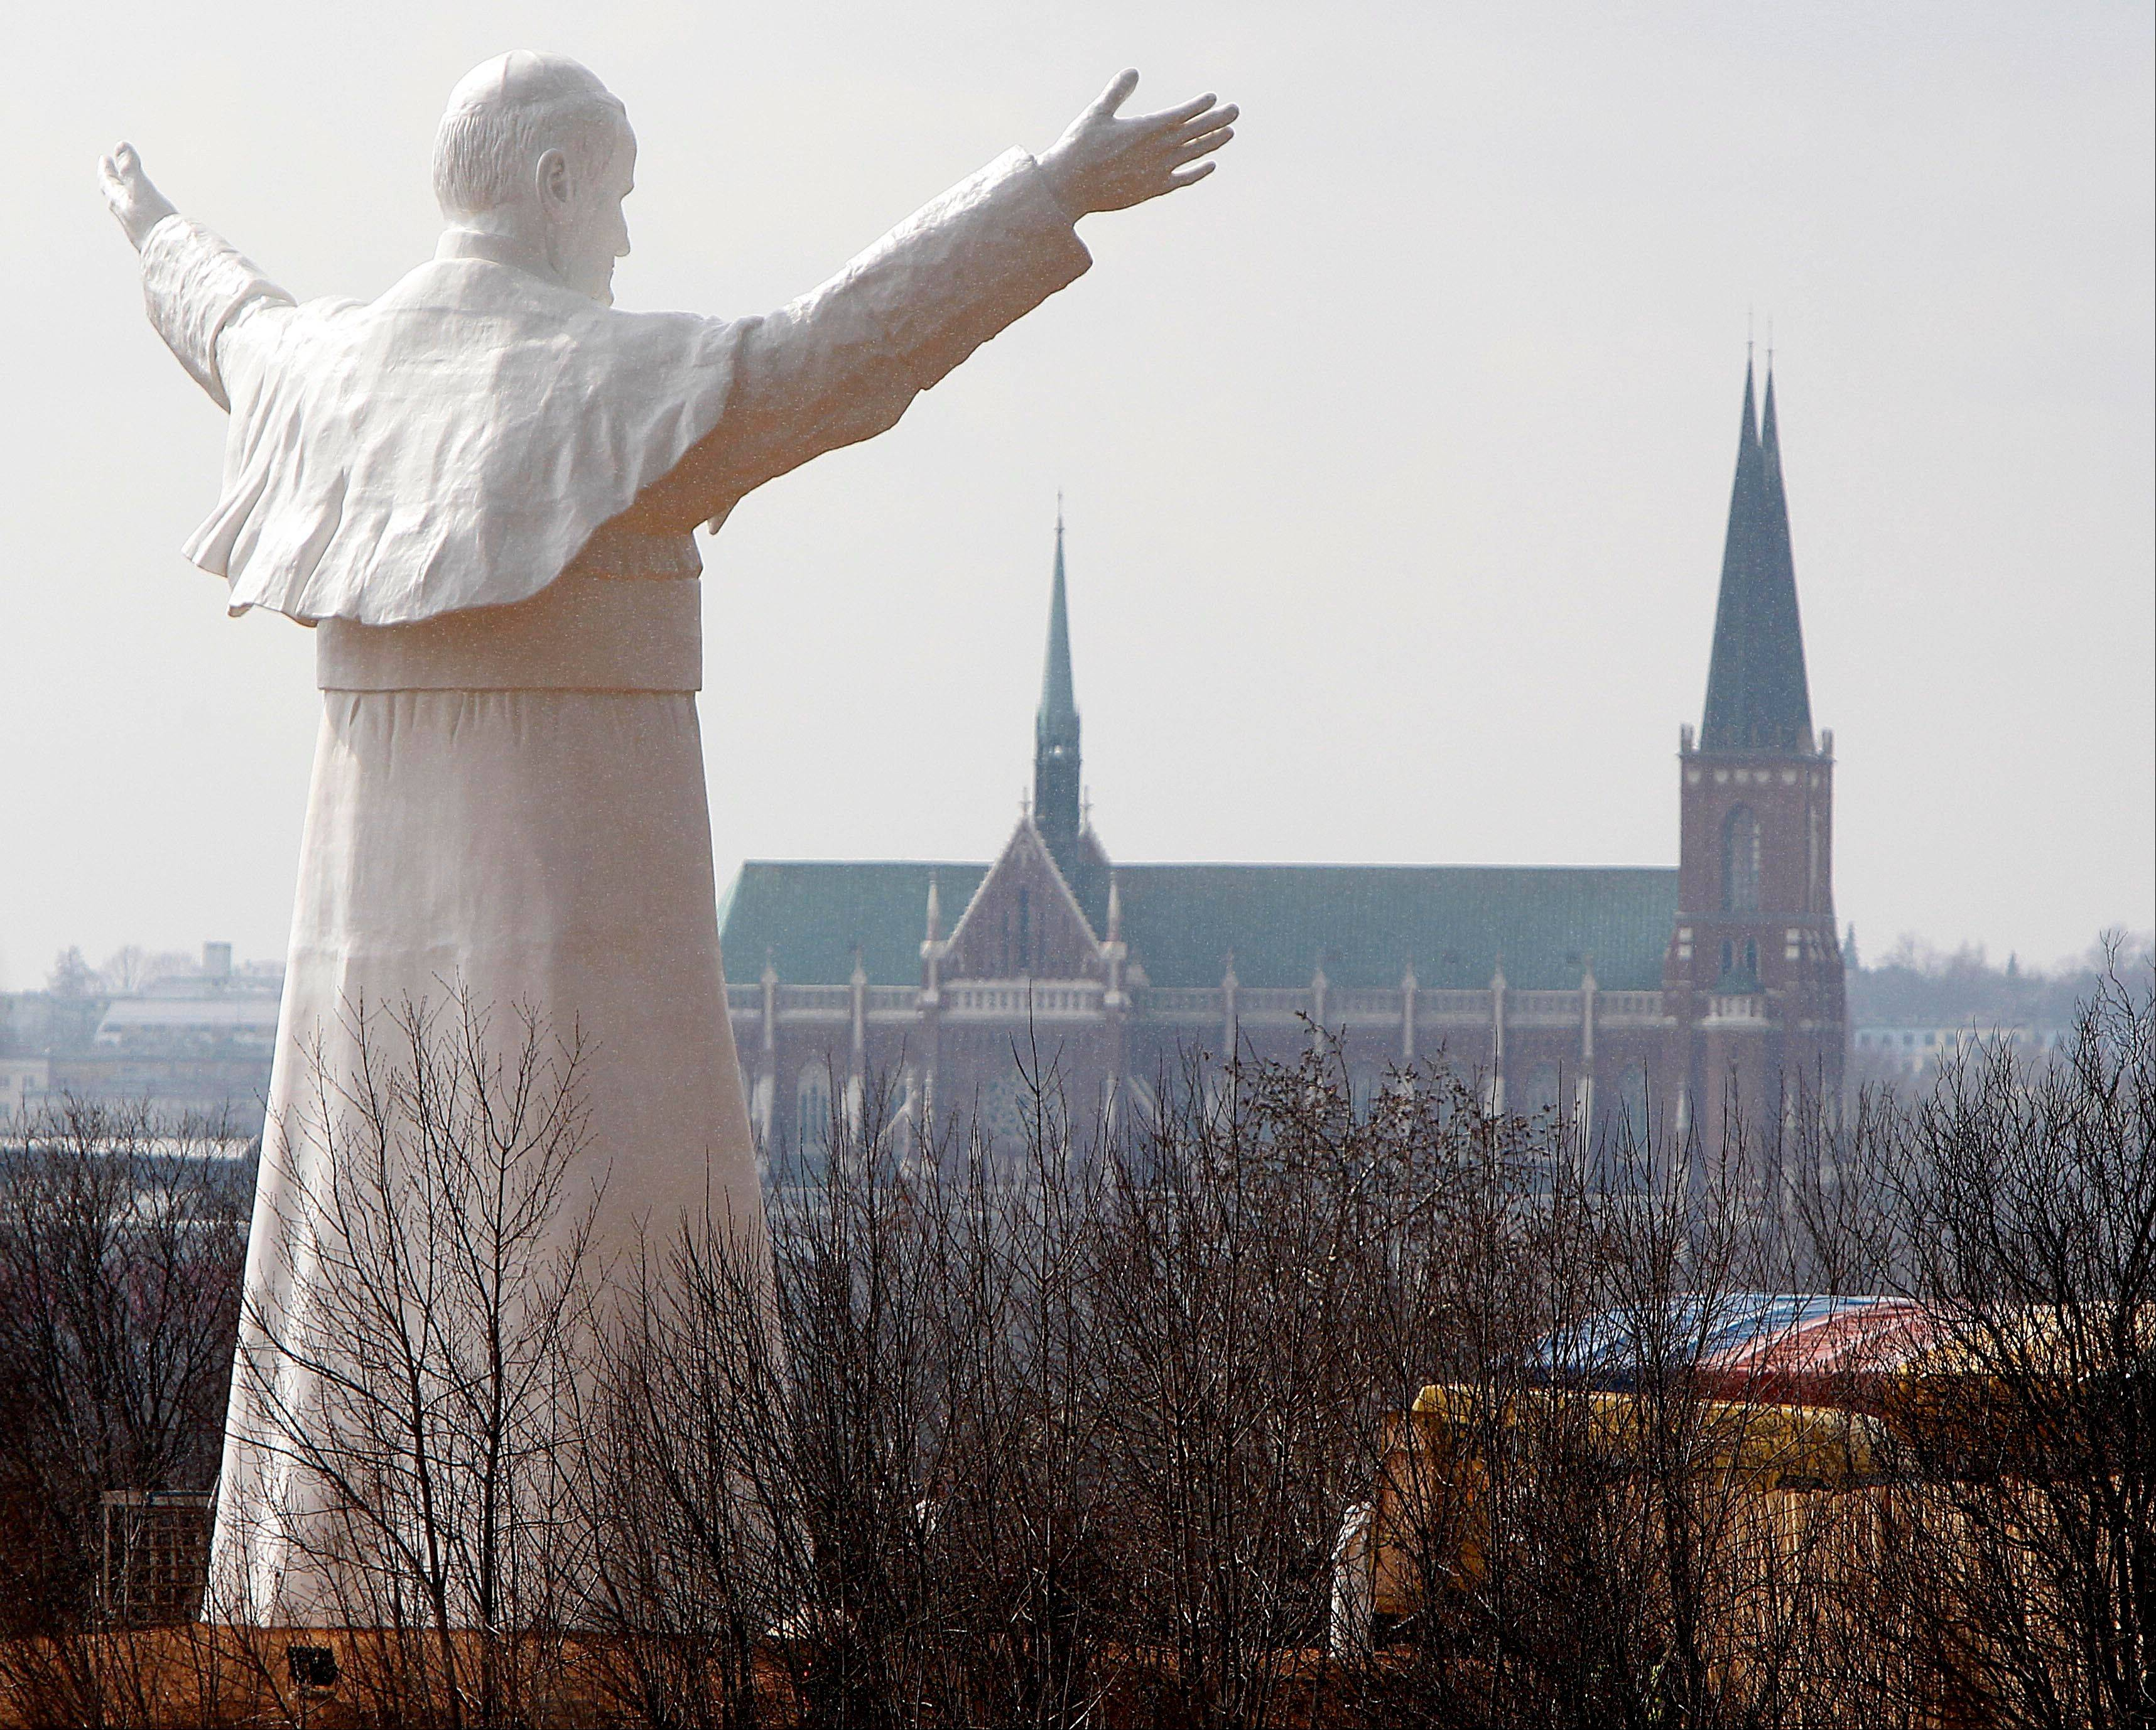 The sculpture of the late Pope John Paul II is unveiled Saturday during a ceremony in Czestochowa, Poland.